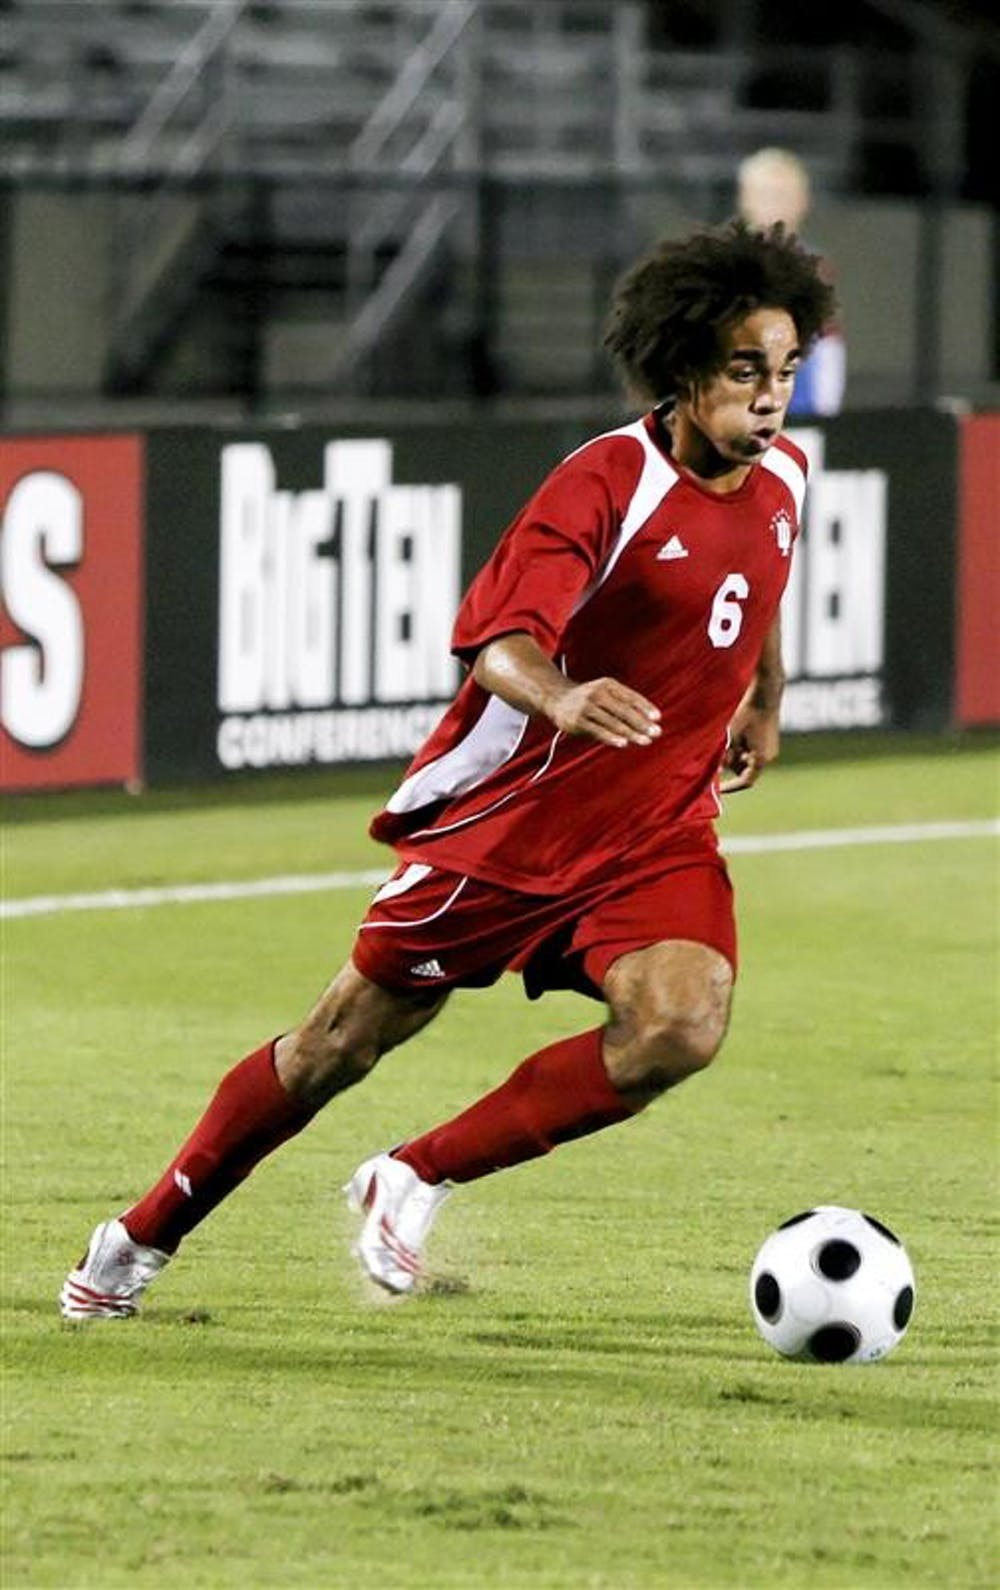 Junior back/midfielder Kevin Alston dribbles the ball during the Hoosiers 3-1 win against No. 9 Notre Dame on Oct. 16 at Bill Armstrong Stadium. IU soccer coach Mike Freitag confirmed Monday that Alston will turn pro passing up his senior season with the Hoosiers.